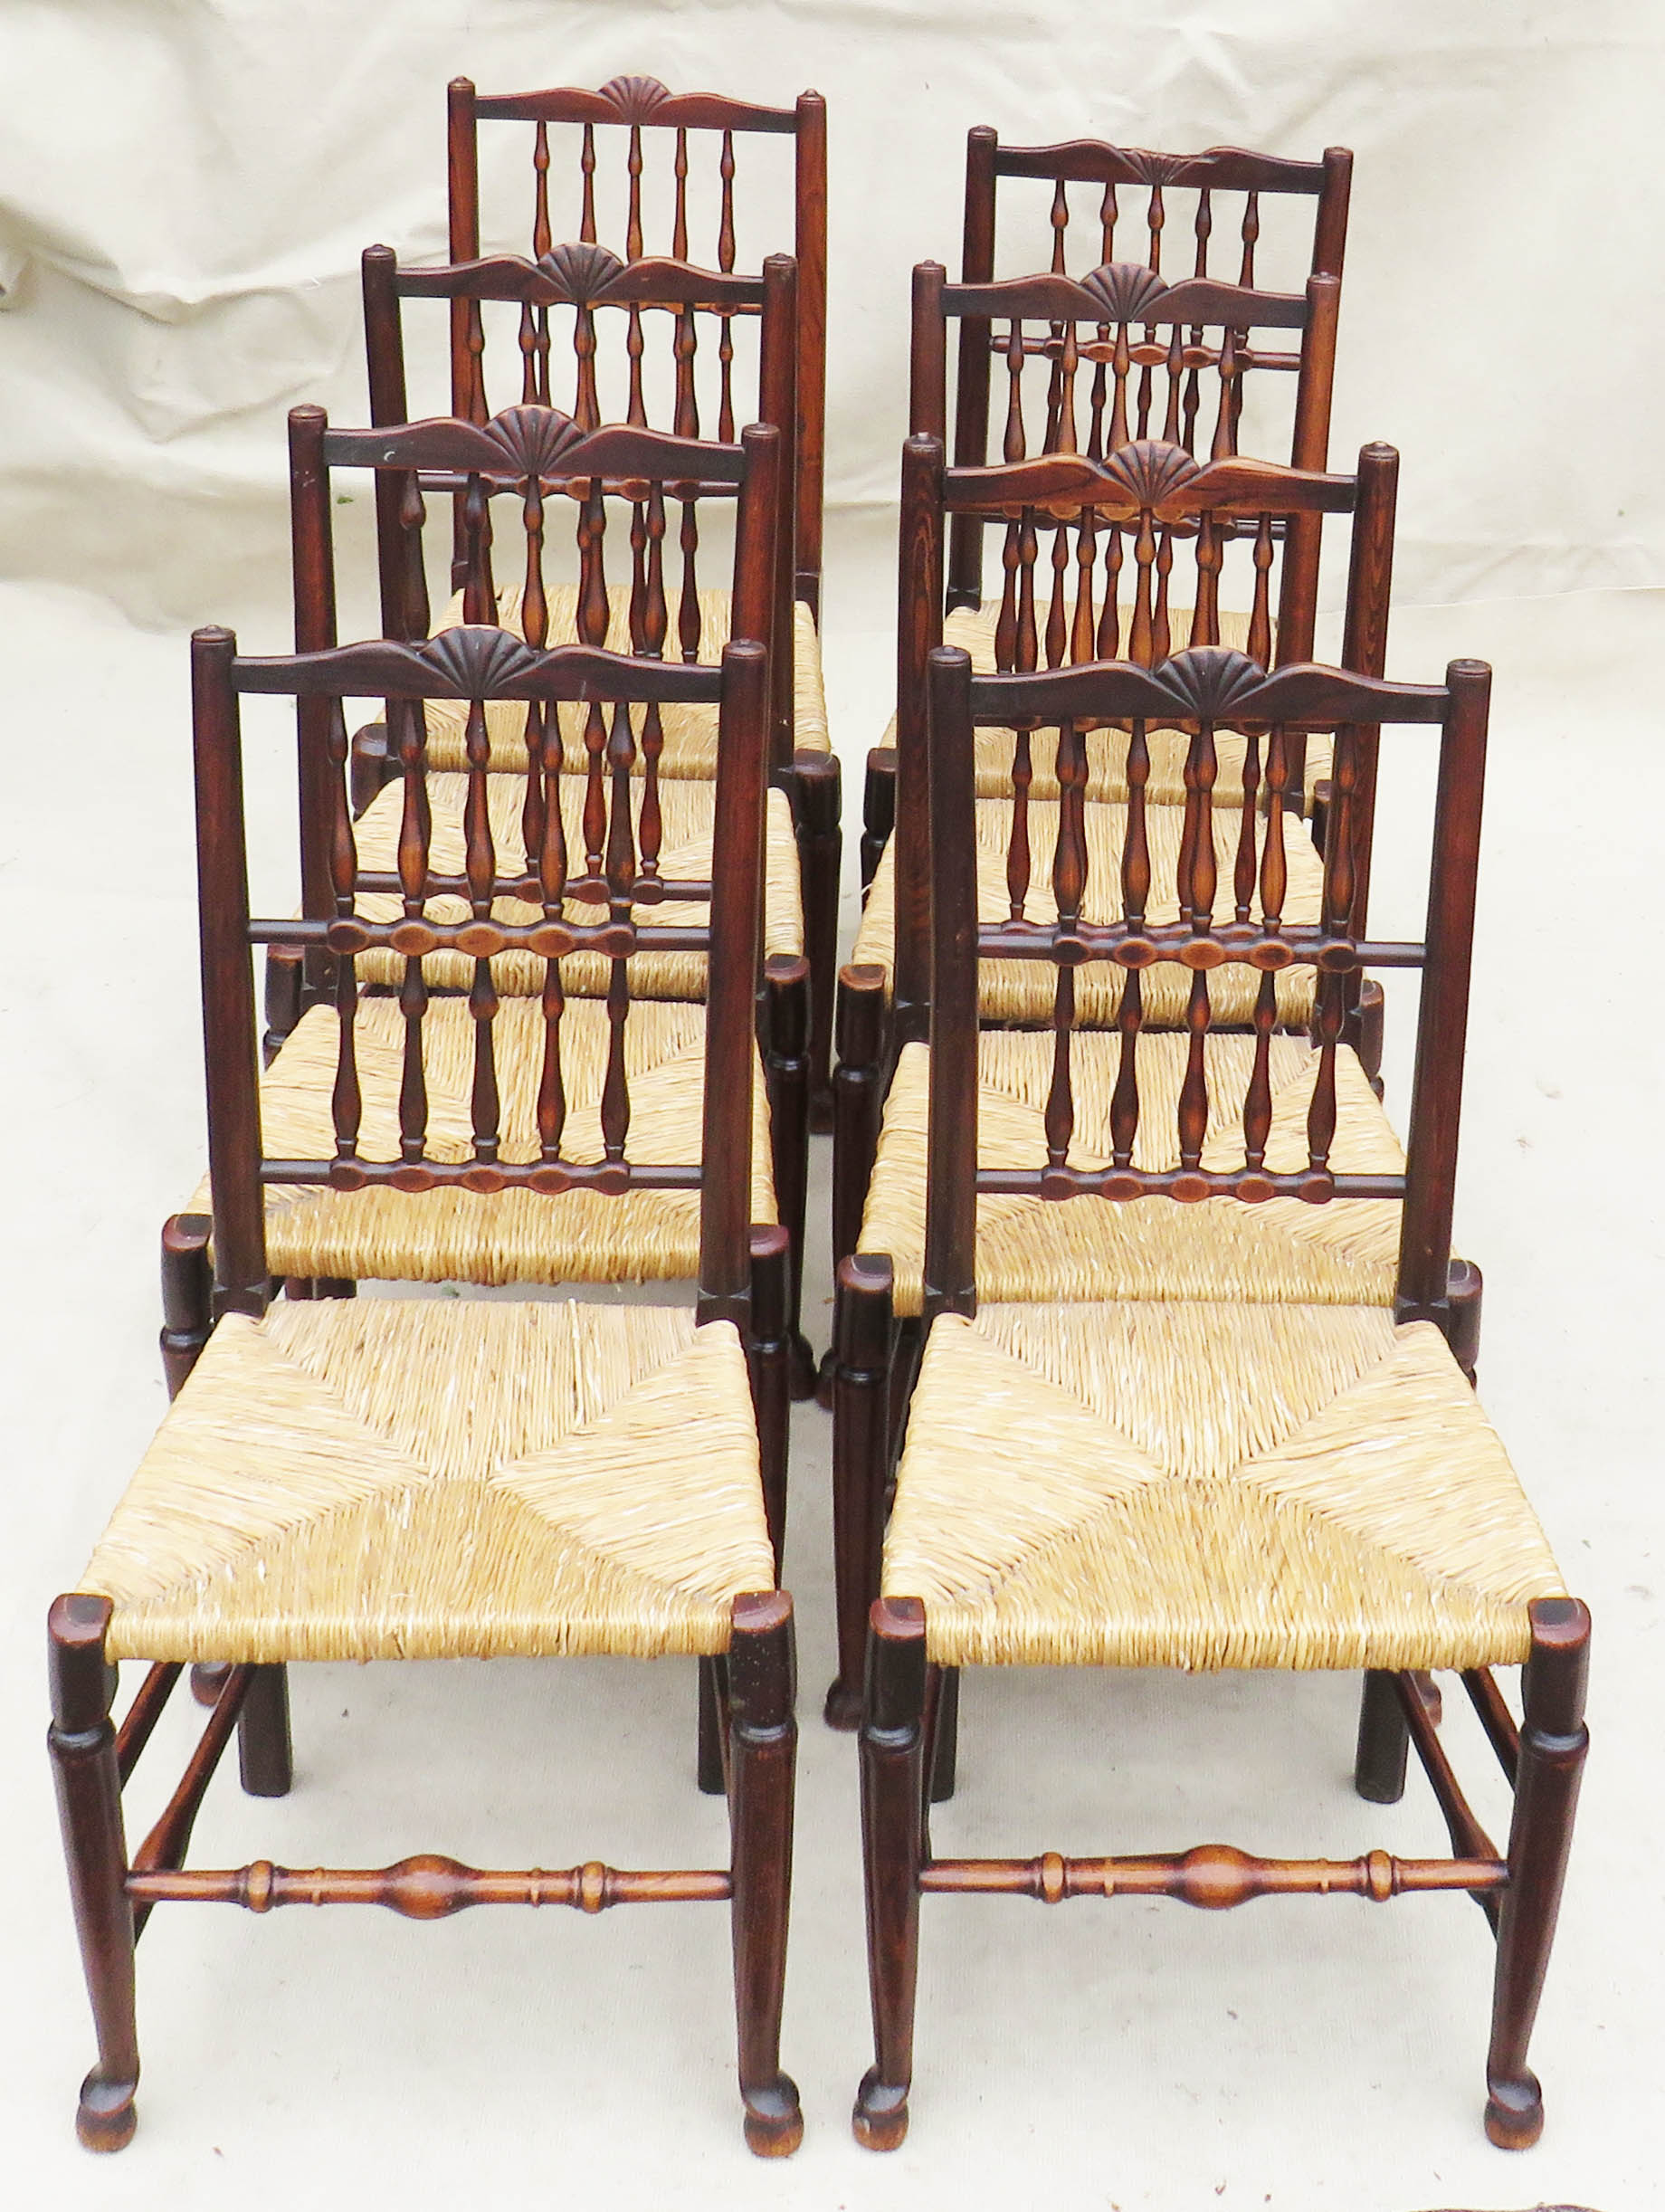 Matched Set Of 8 Spindle Back Dining Chairs, Early 19th Century - Image 2 of 12